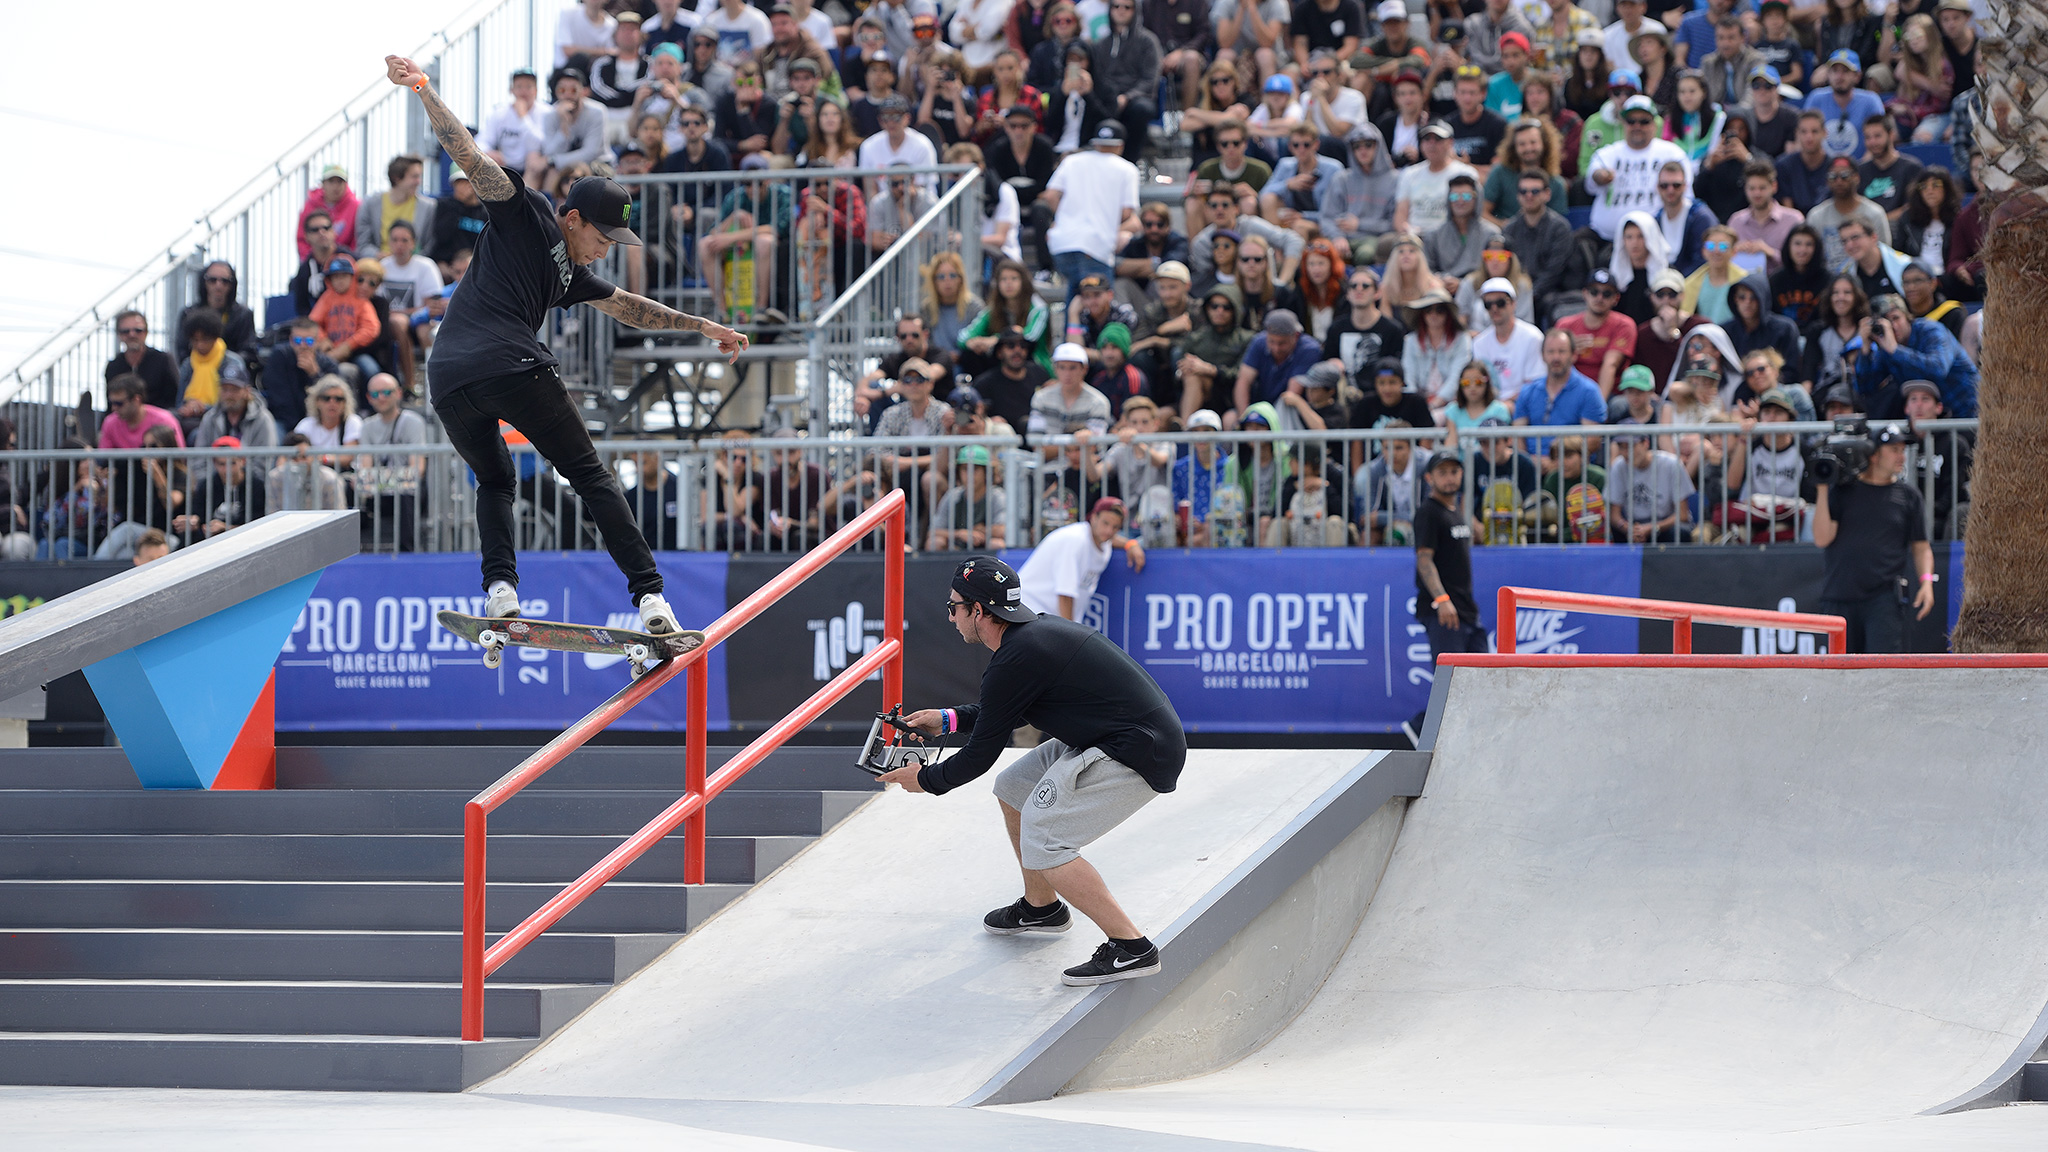 Nyjah Huston competes at the SLS Pro Open Barcelona 2016.